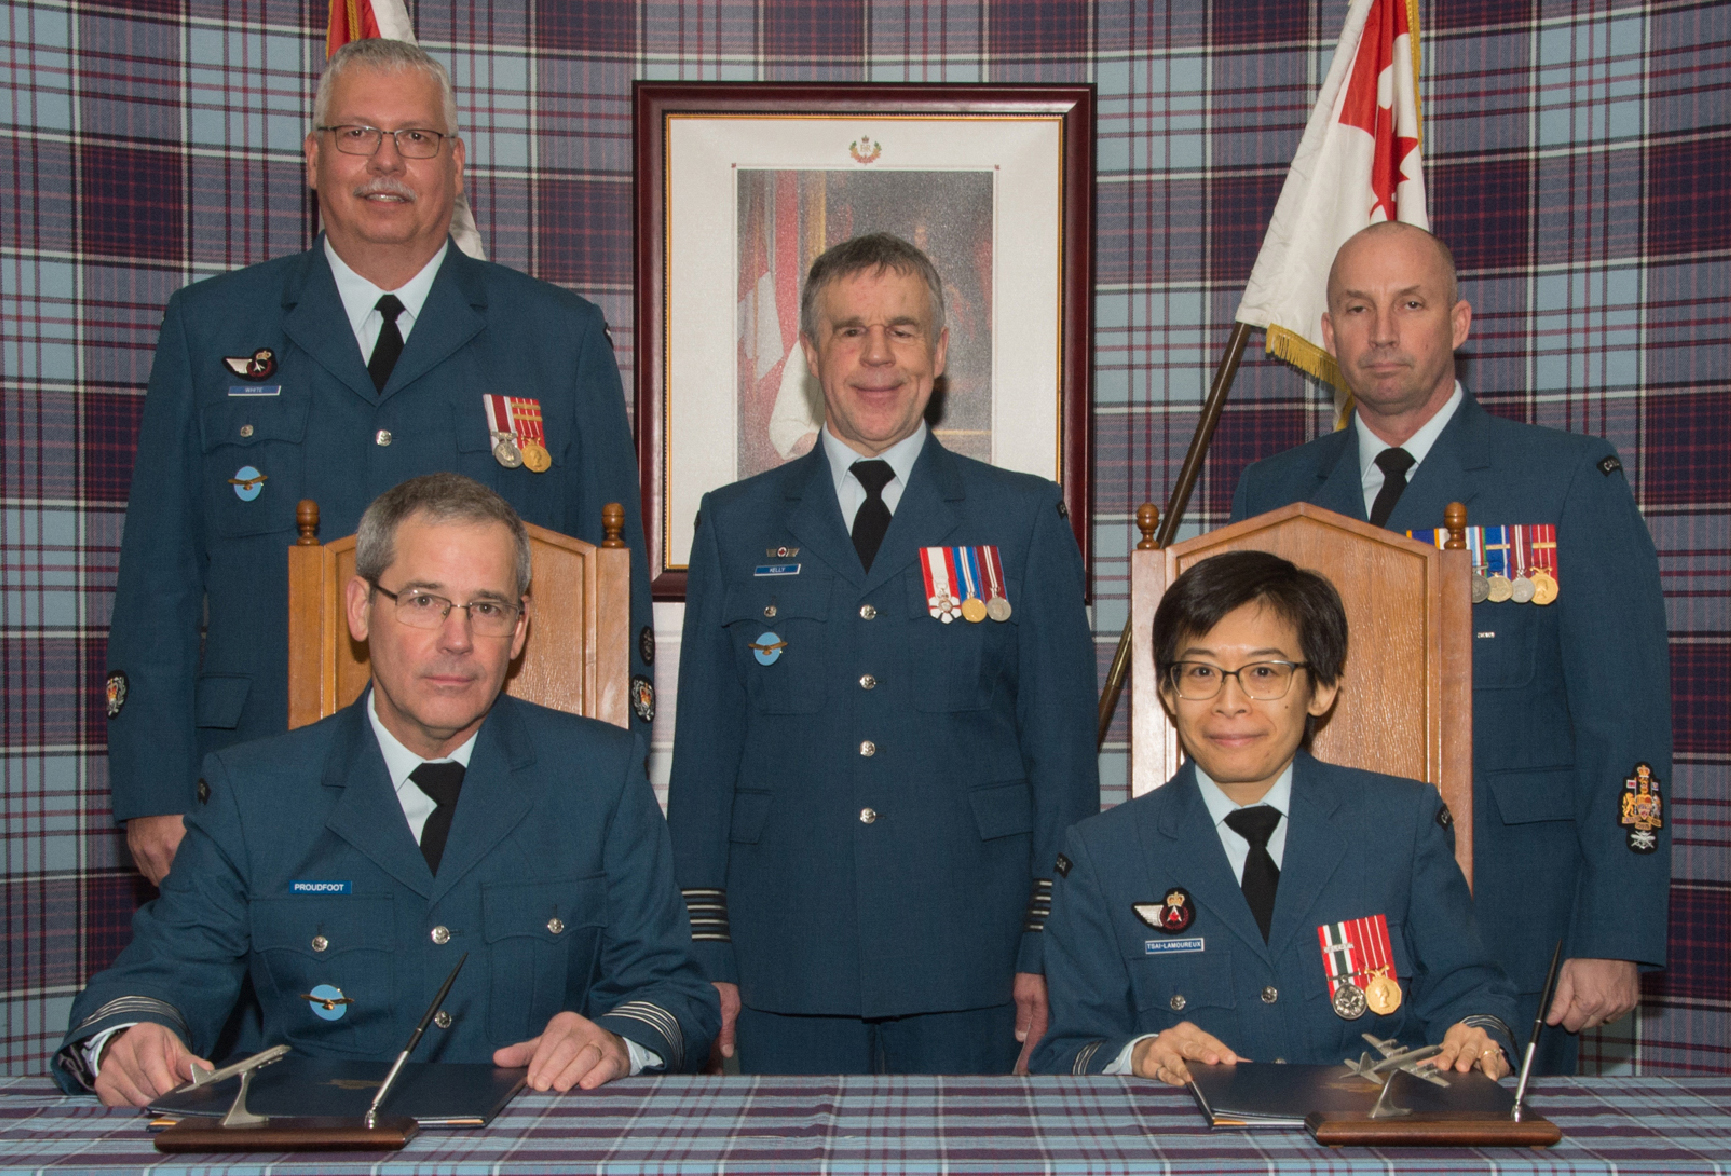 14 Air Maintenance Squadron Honorary Colonel David Proudfoot sits with squadron commander Lieutenant-Colonel Amy Tsai-Lamoureux during Honorary Colonel Proudfoot's investiture at 14 Wing Greenwood, Nova Scotia, on March 21, 2019. Standing, from left, are Master Warrant Officer Gord Morse, 14 Wing Honorary Colonel Terry Kelly, and Wing Chief Warrant Officer Dan Campbell. PHOTO: Leading Seaman Cassidy Moon, GD02-2019-0126-026